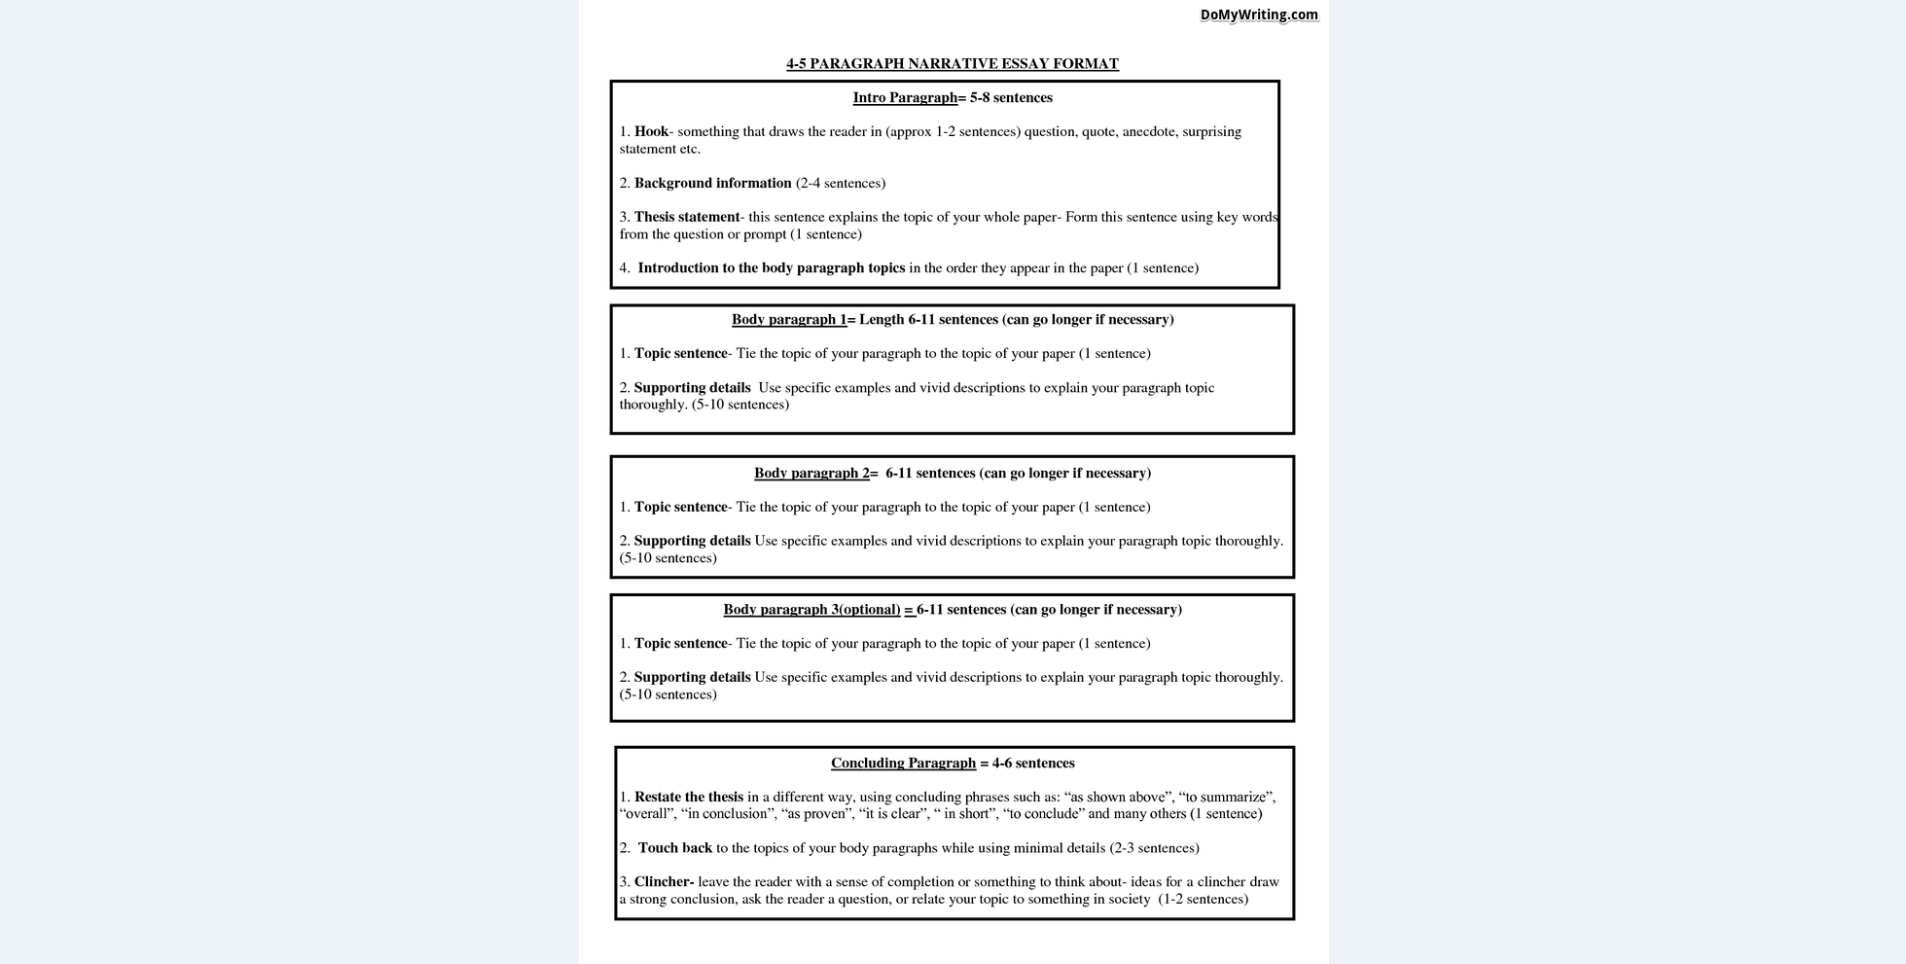 004 Narrative Essay Format Unique Personal Examples For Middle School High Pdf Full